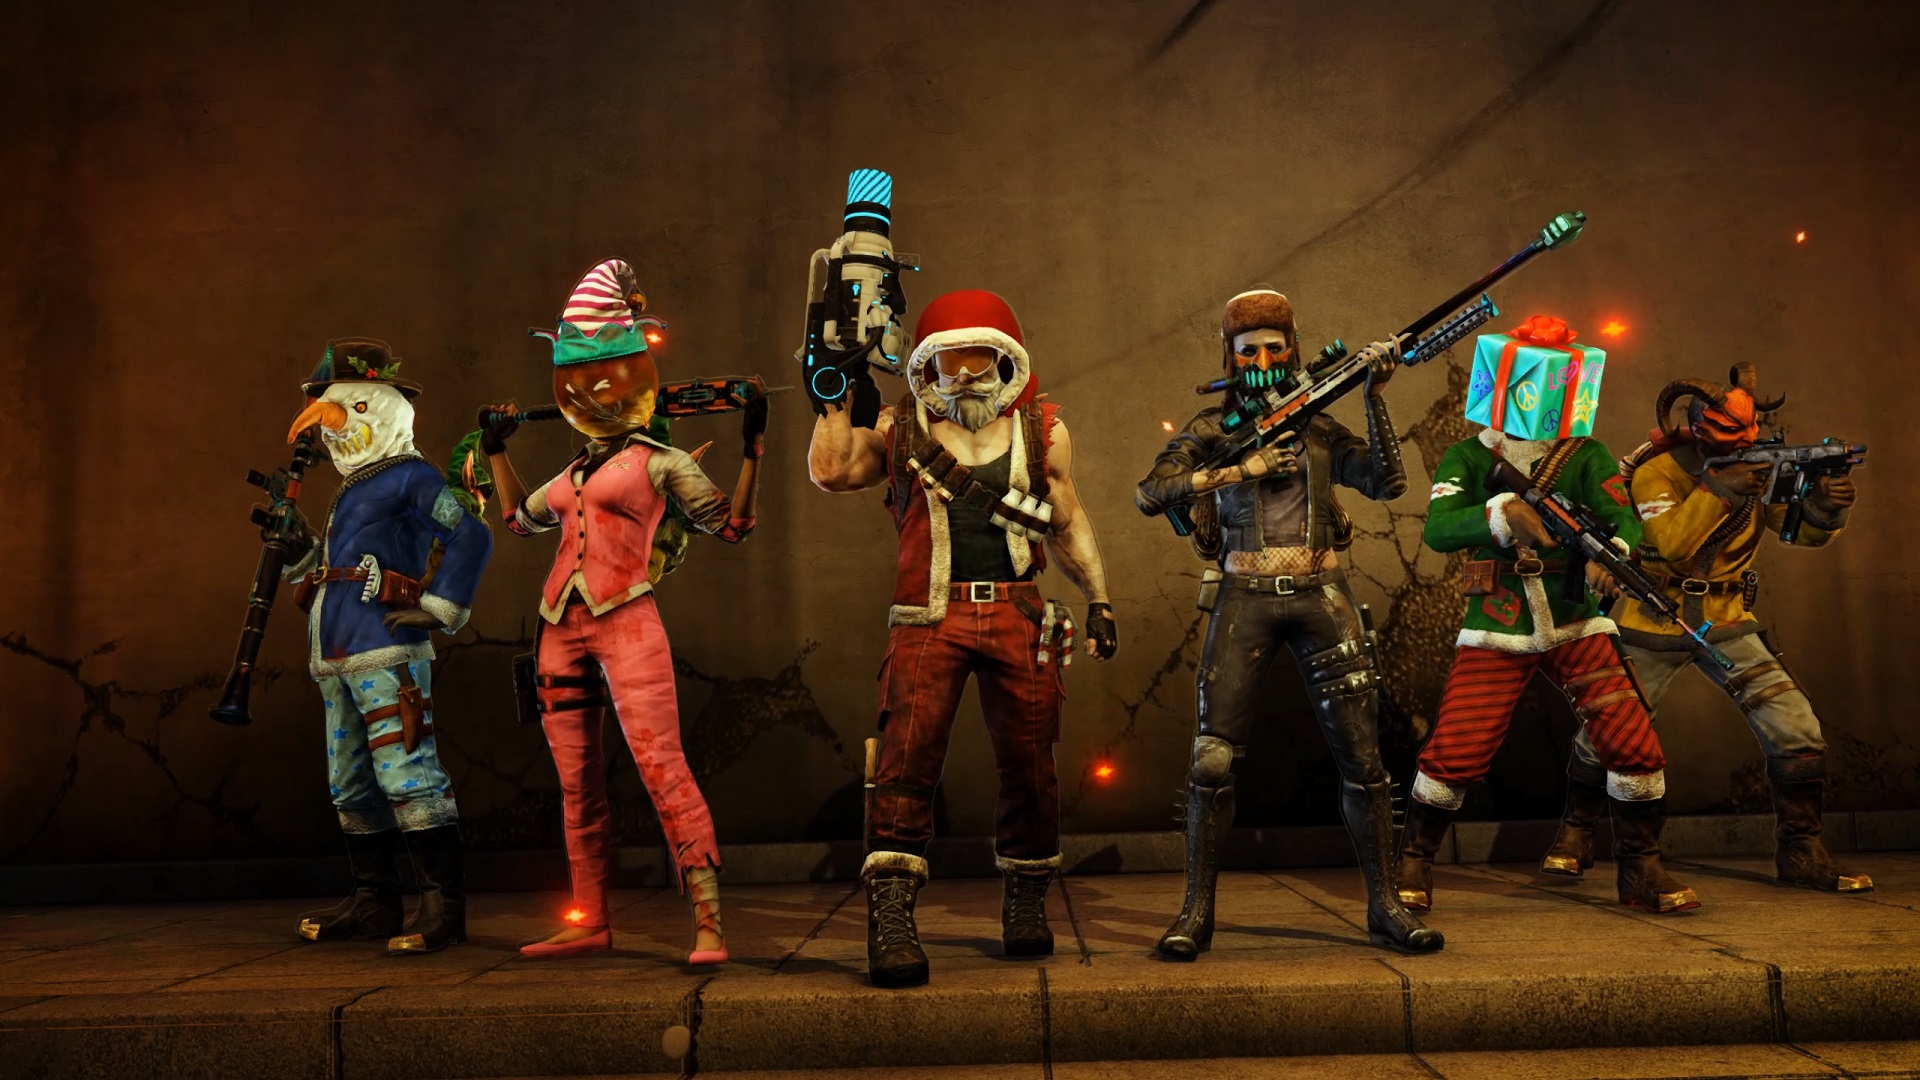 Kf2 Christmas 2021 End Killing Floor 2 S Christmas Crackdown Event Brings A New Map To Pc And Consoles Egm